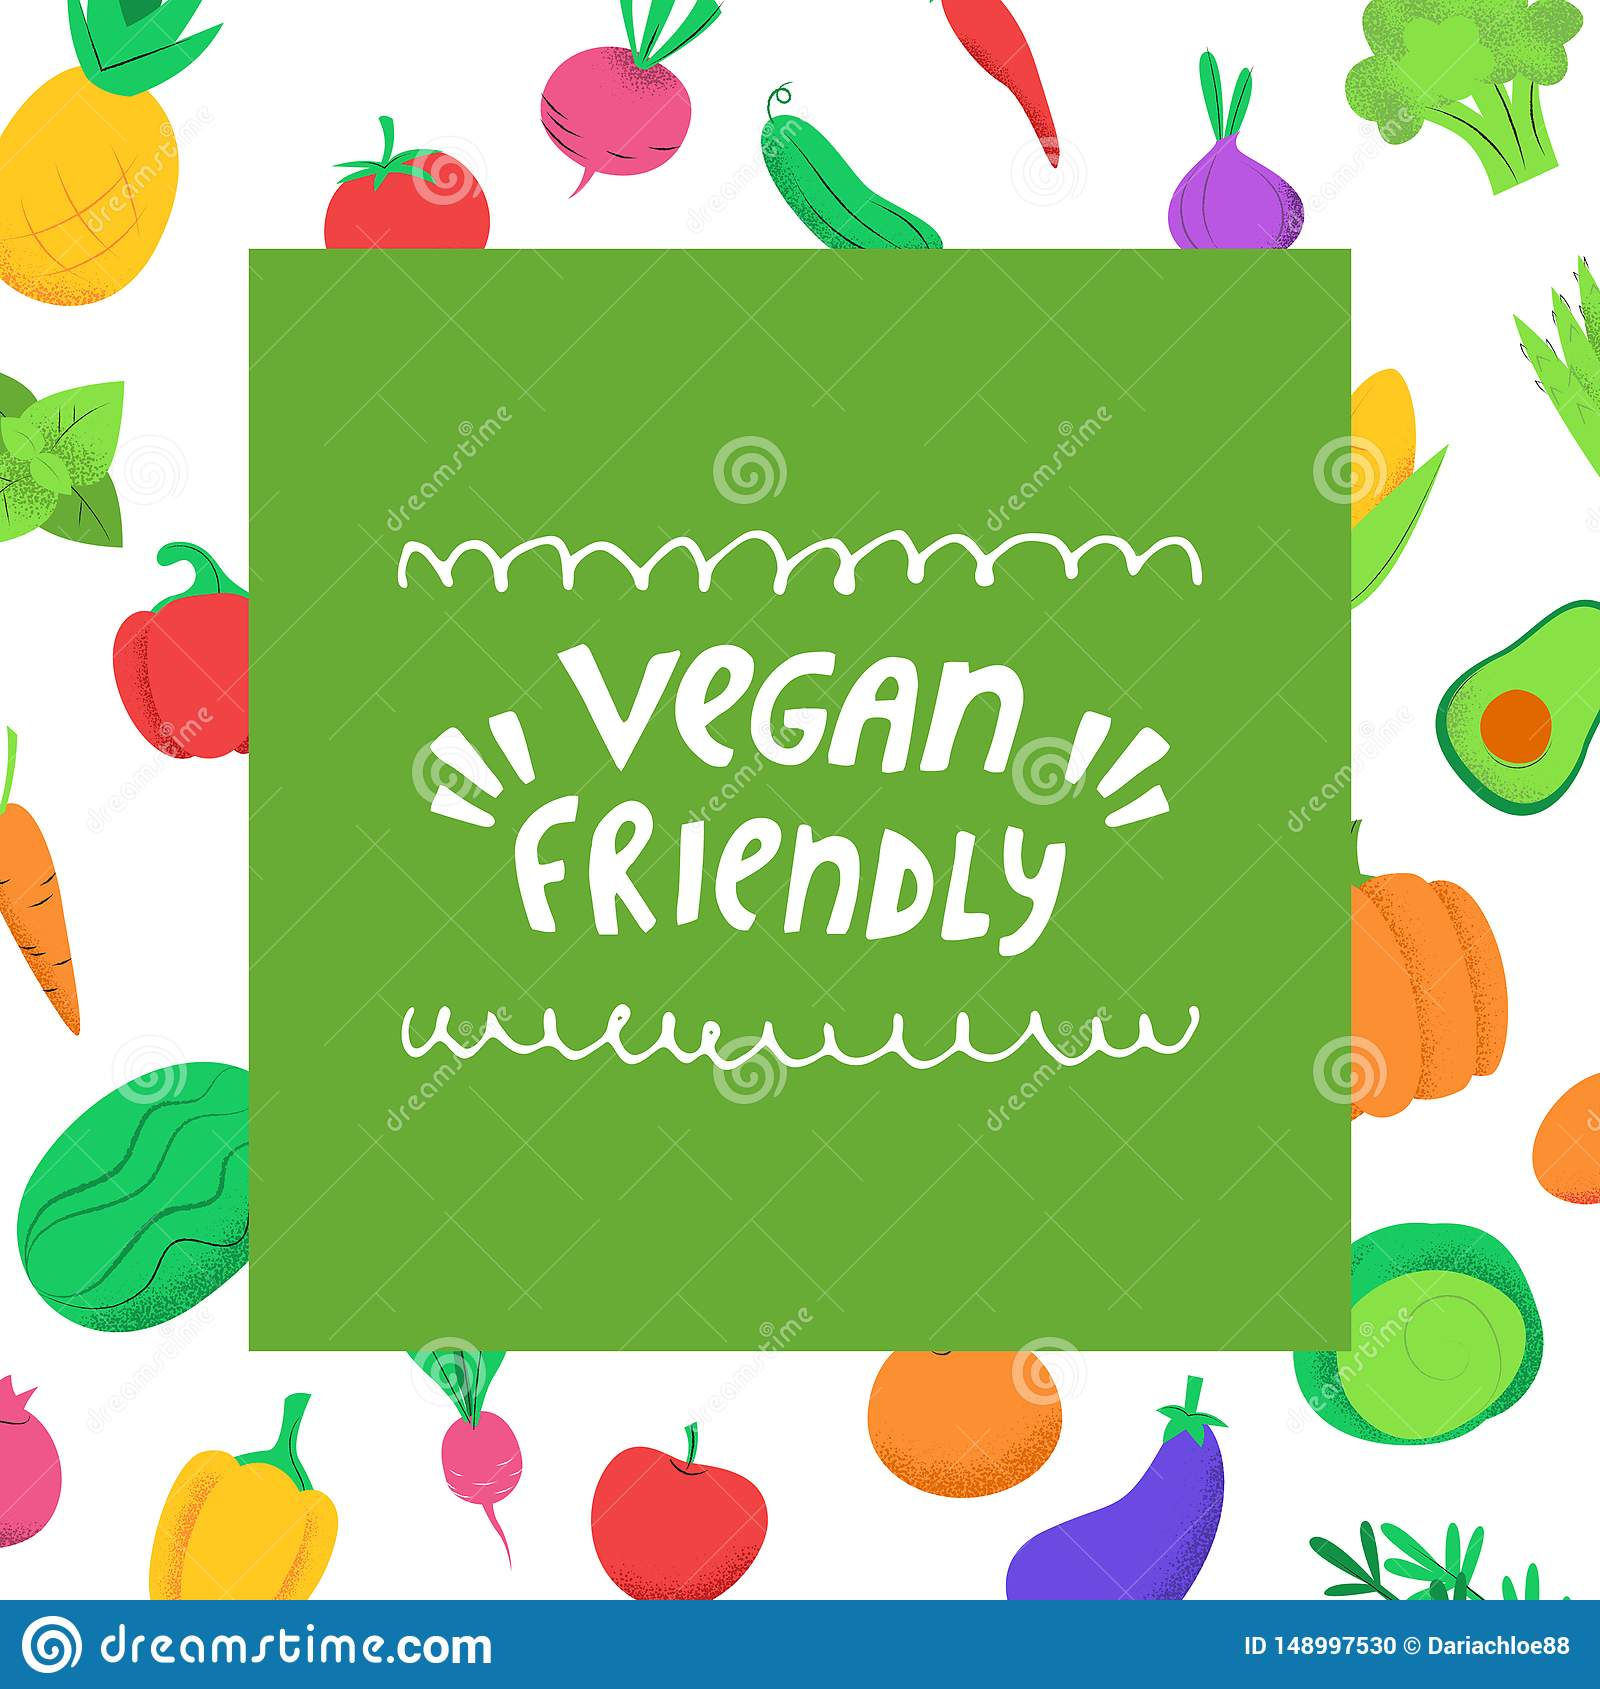 Vegan Friendly Banner With Vegetables Stock Vector Illustration Of Product Edible 148997530